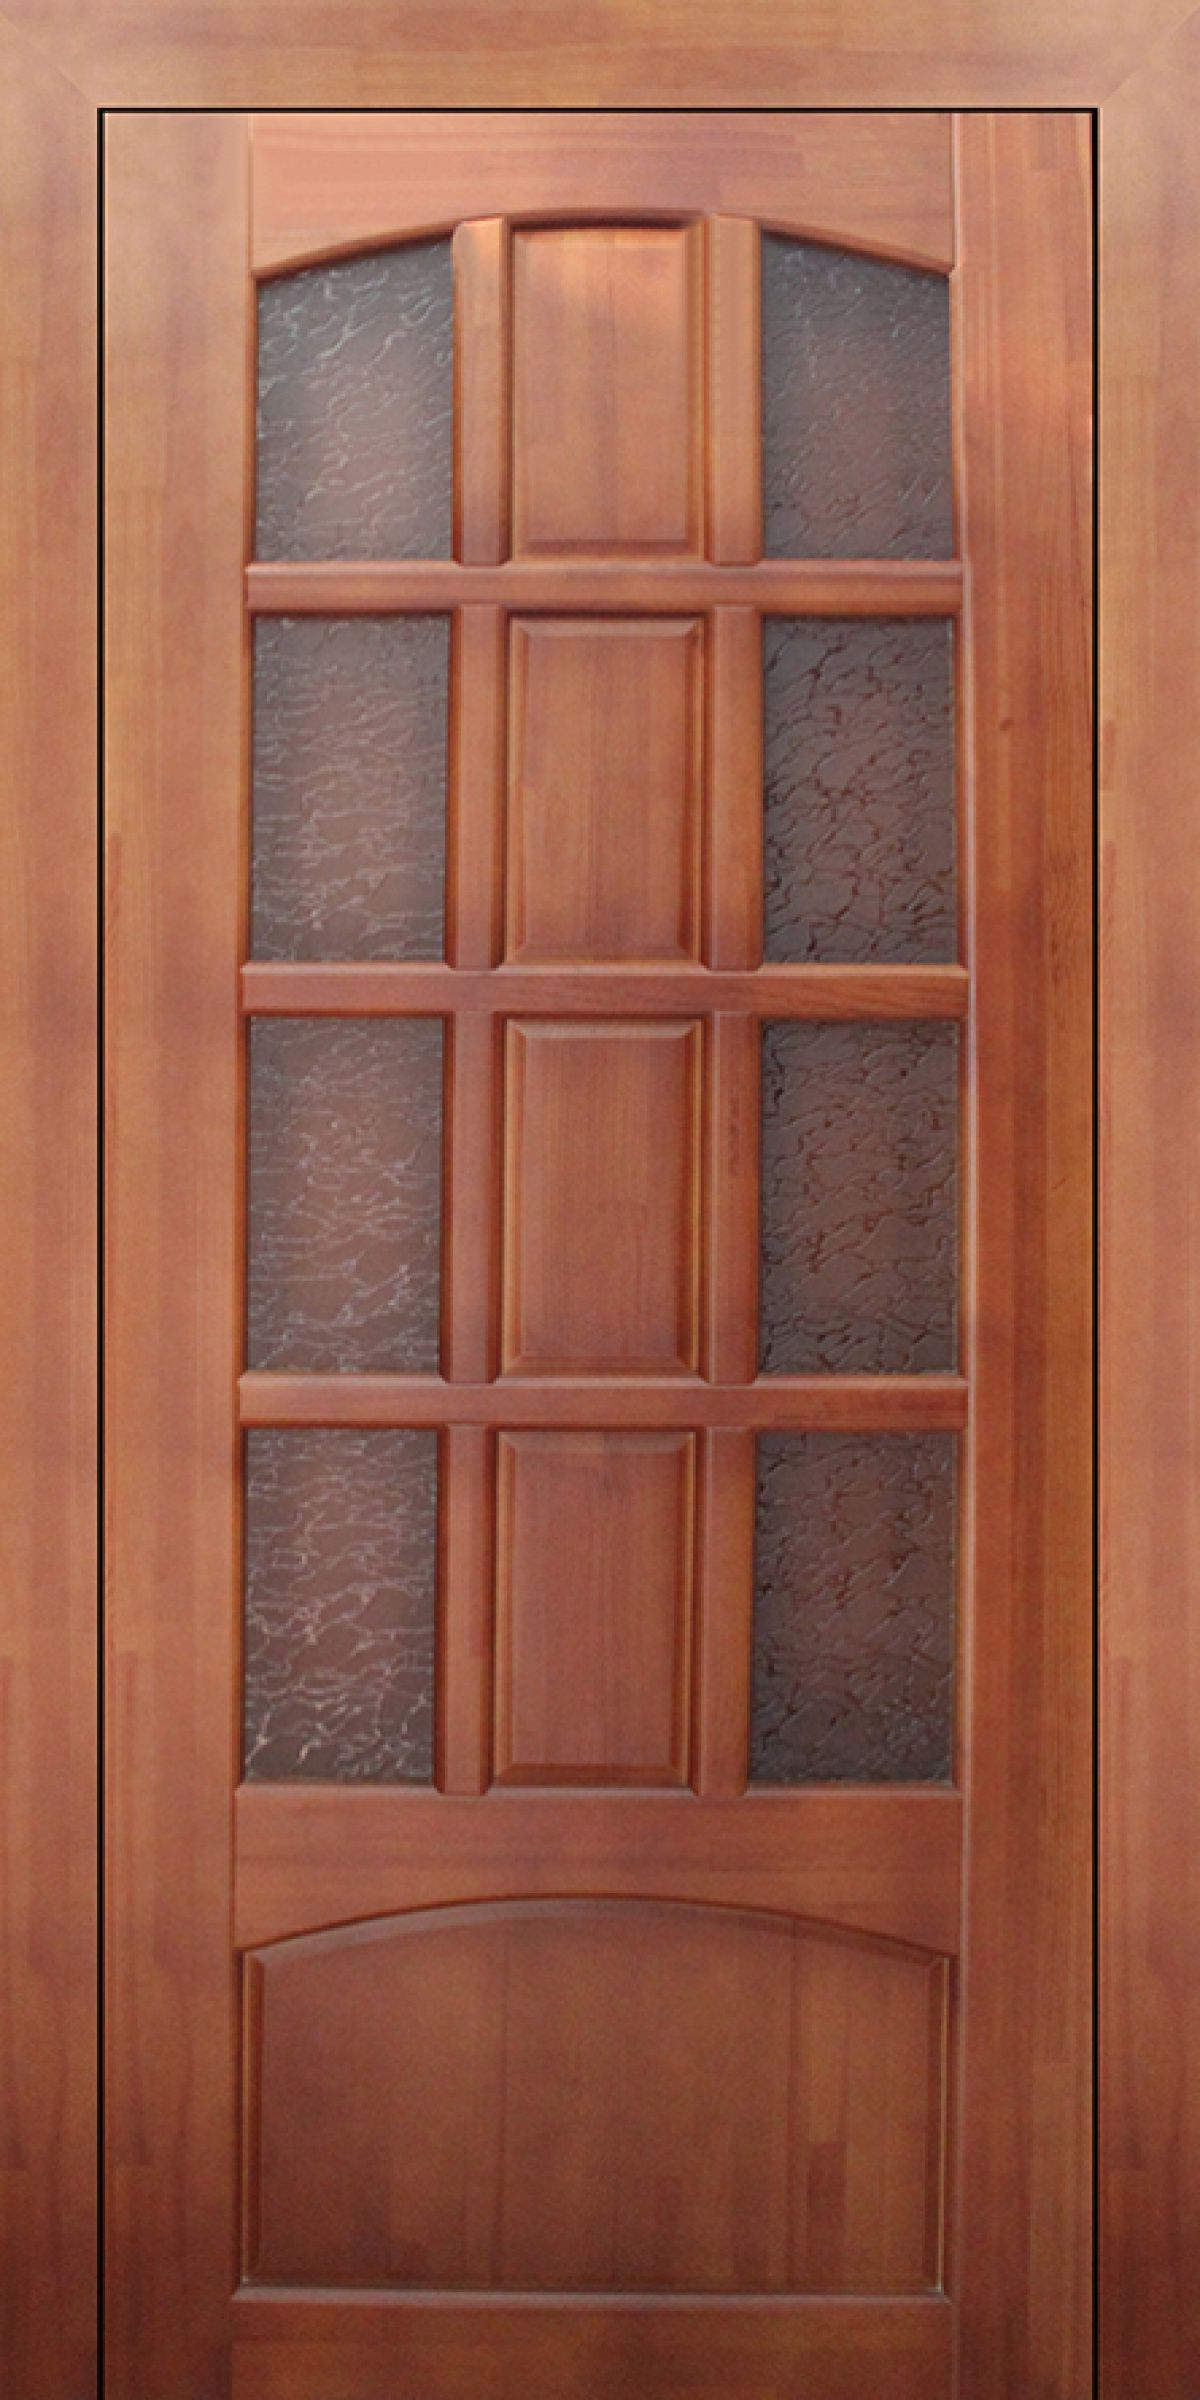 Wooden interior doors interior door solid wood door with glass planetlyrics Image collections